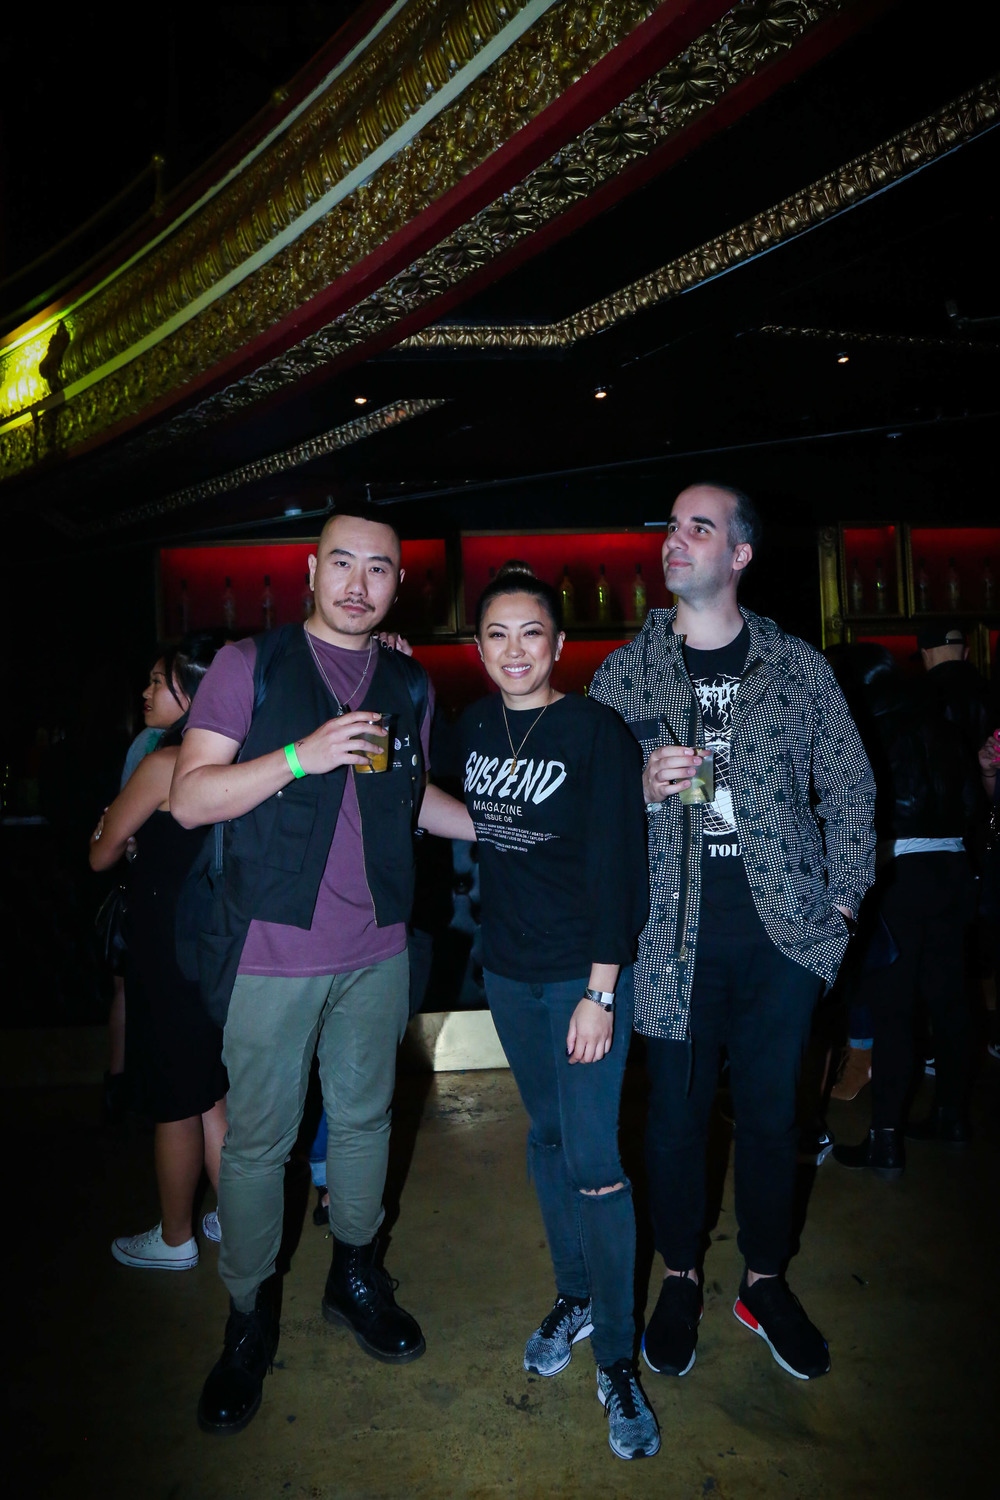 Benny BeStreet (right) with EIC Diane Abapo at the ISSUE 06 Release Party x HLZBLZ 10-Year Anniversary (Feb 11). / Photo: © Angella Choe for SUSPEND Magazine